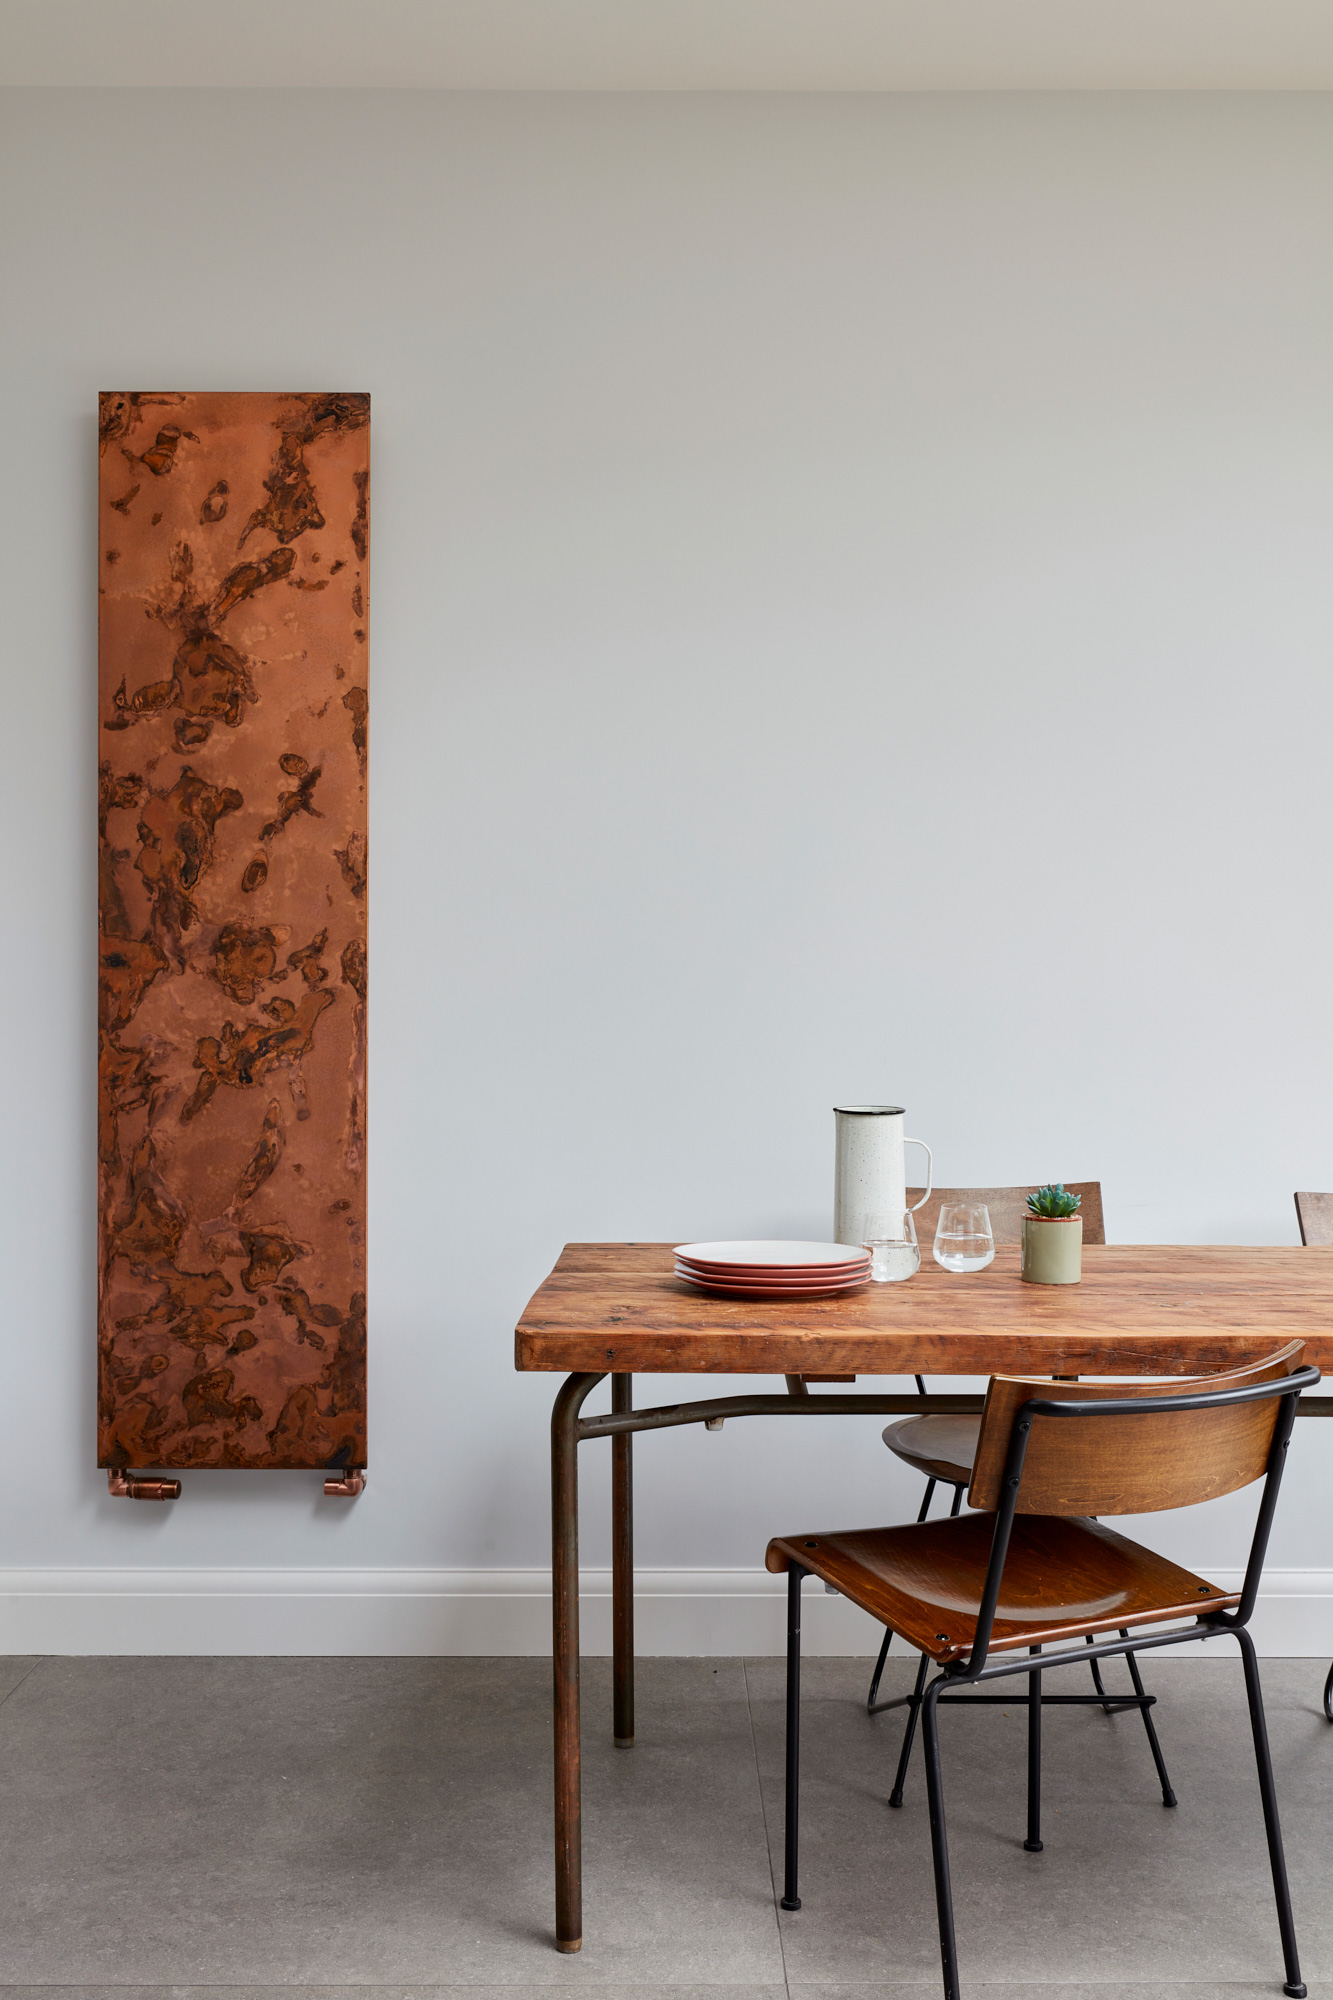 Exposed copper radiator with reclaimed oak table